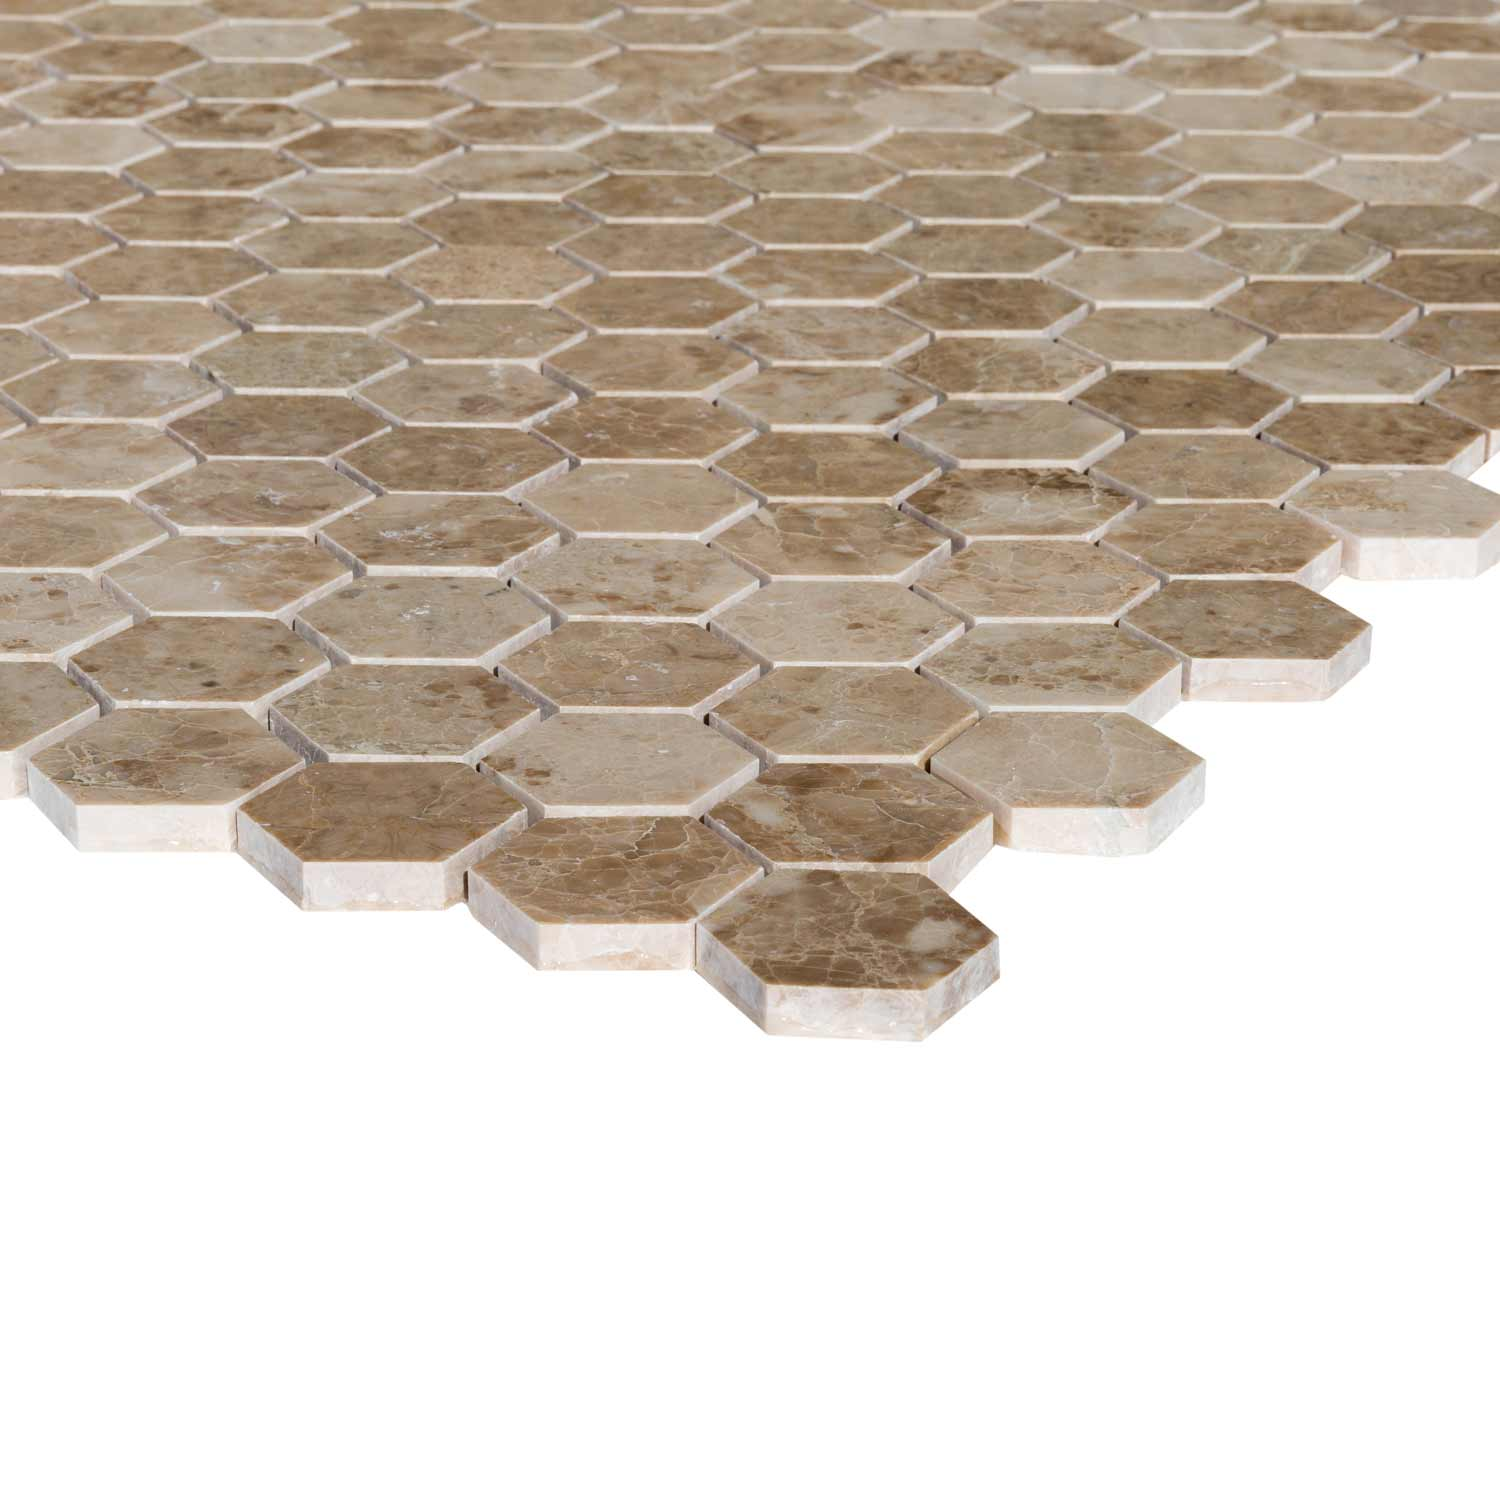 20020069-cappuccino-marble-mosaics-polished-2-hexagon-close-angle-view-www.mayausatile